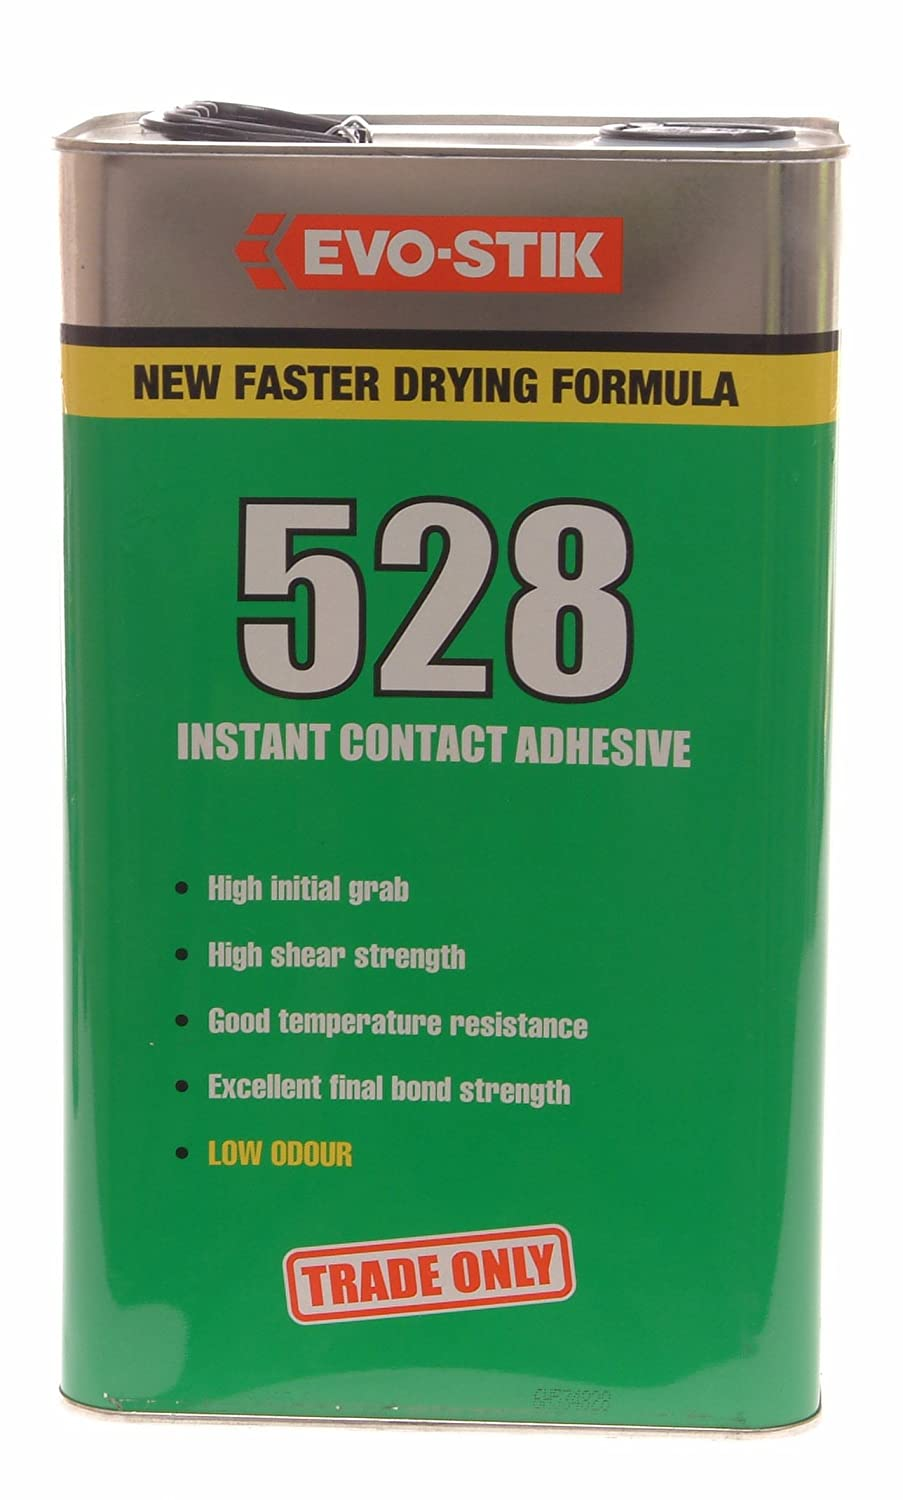 evo stik contact adhesive litre amazon co uk diy evo stik 528 contact adhesive 5 litre 805910 amazon co uk diy tools